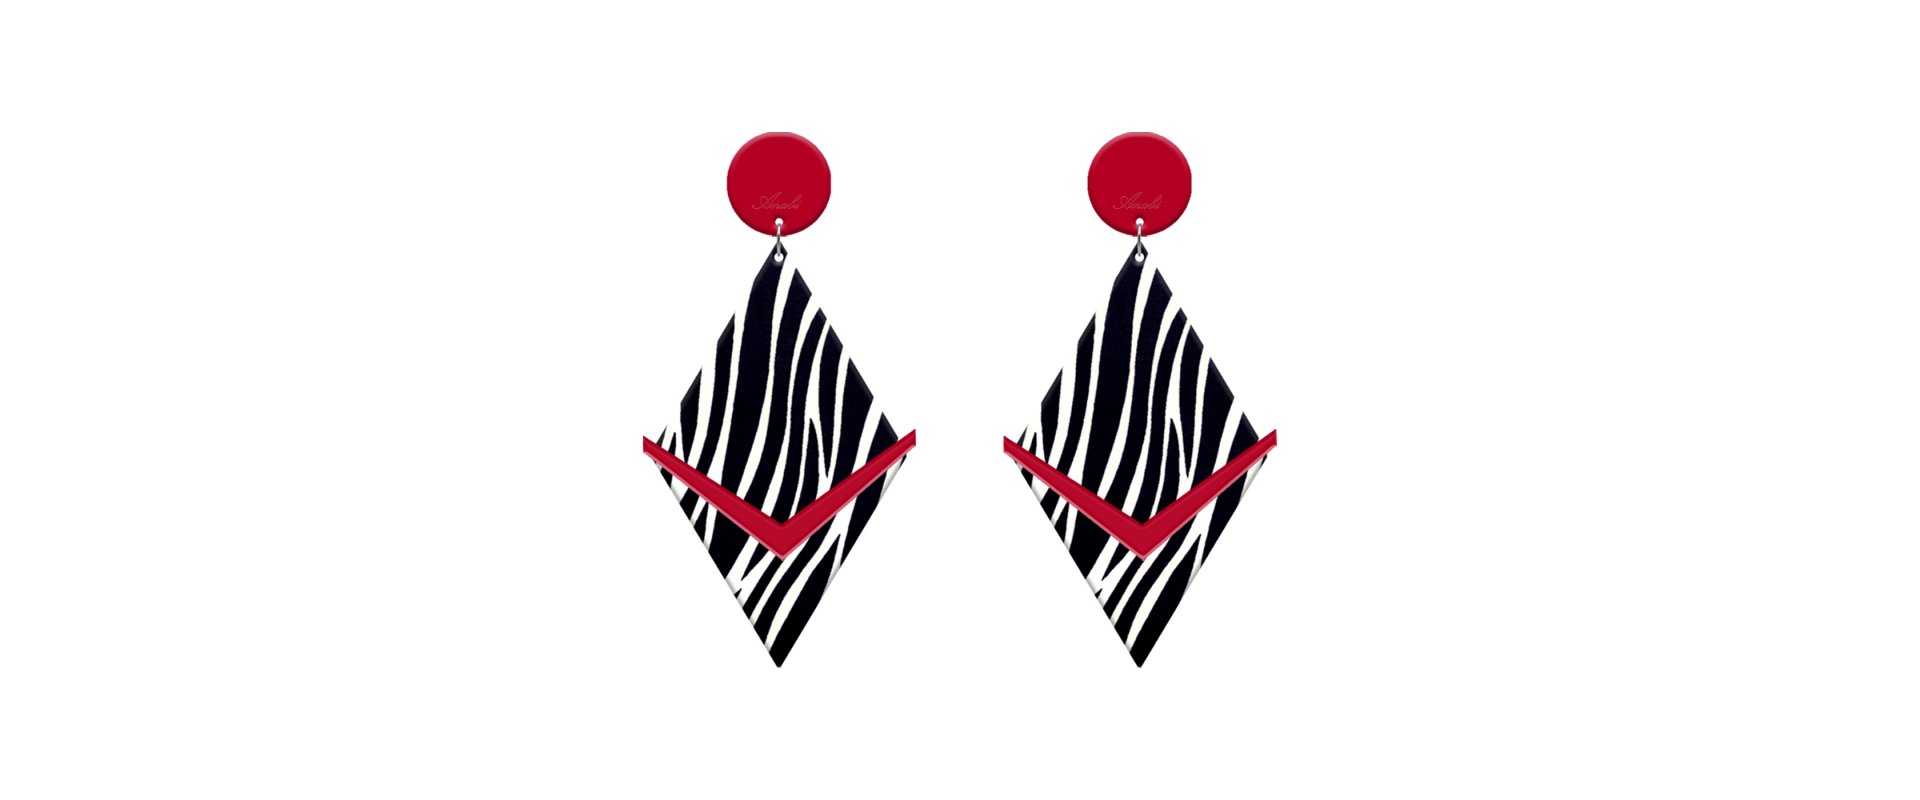 Earrings masai in online store anabi.online